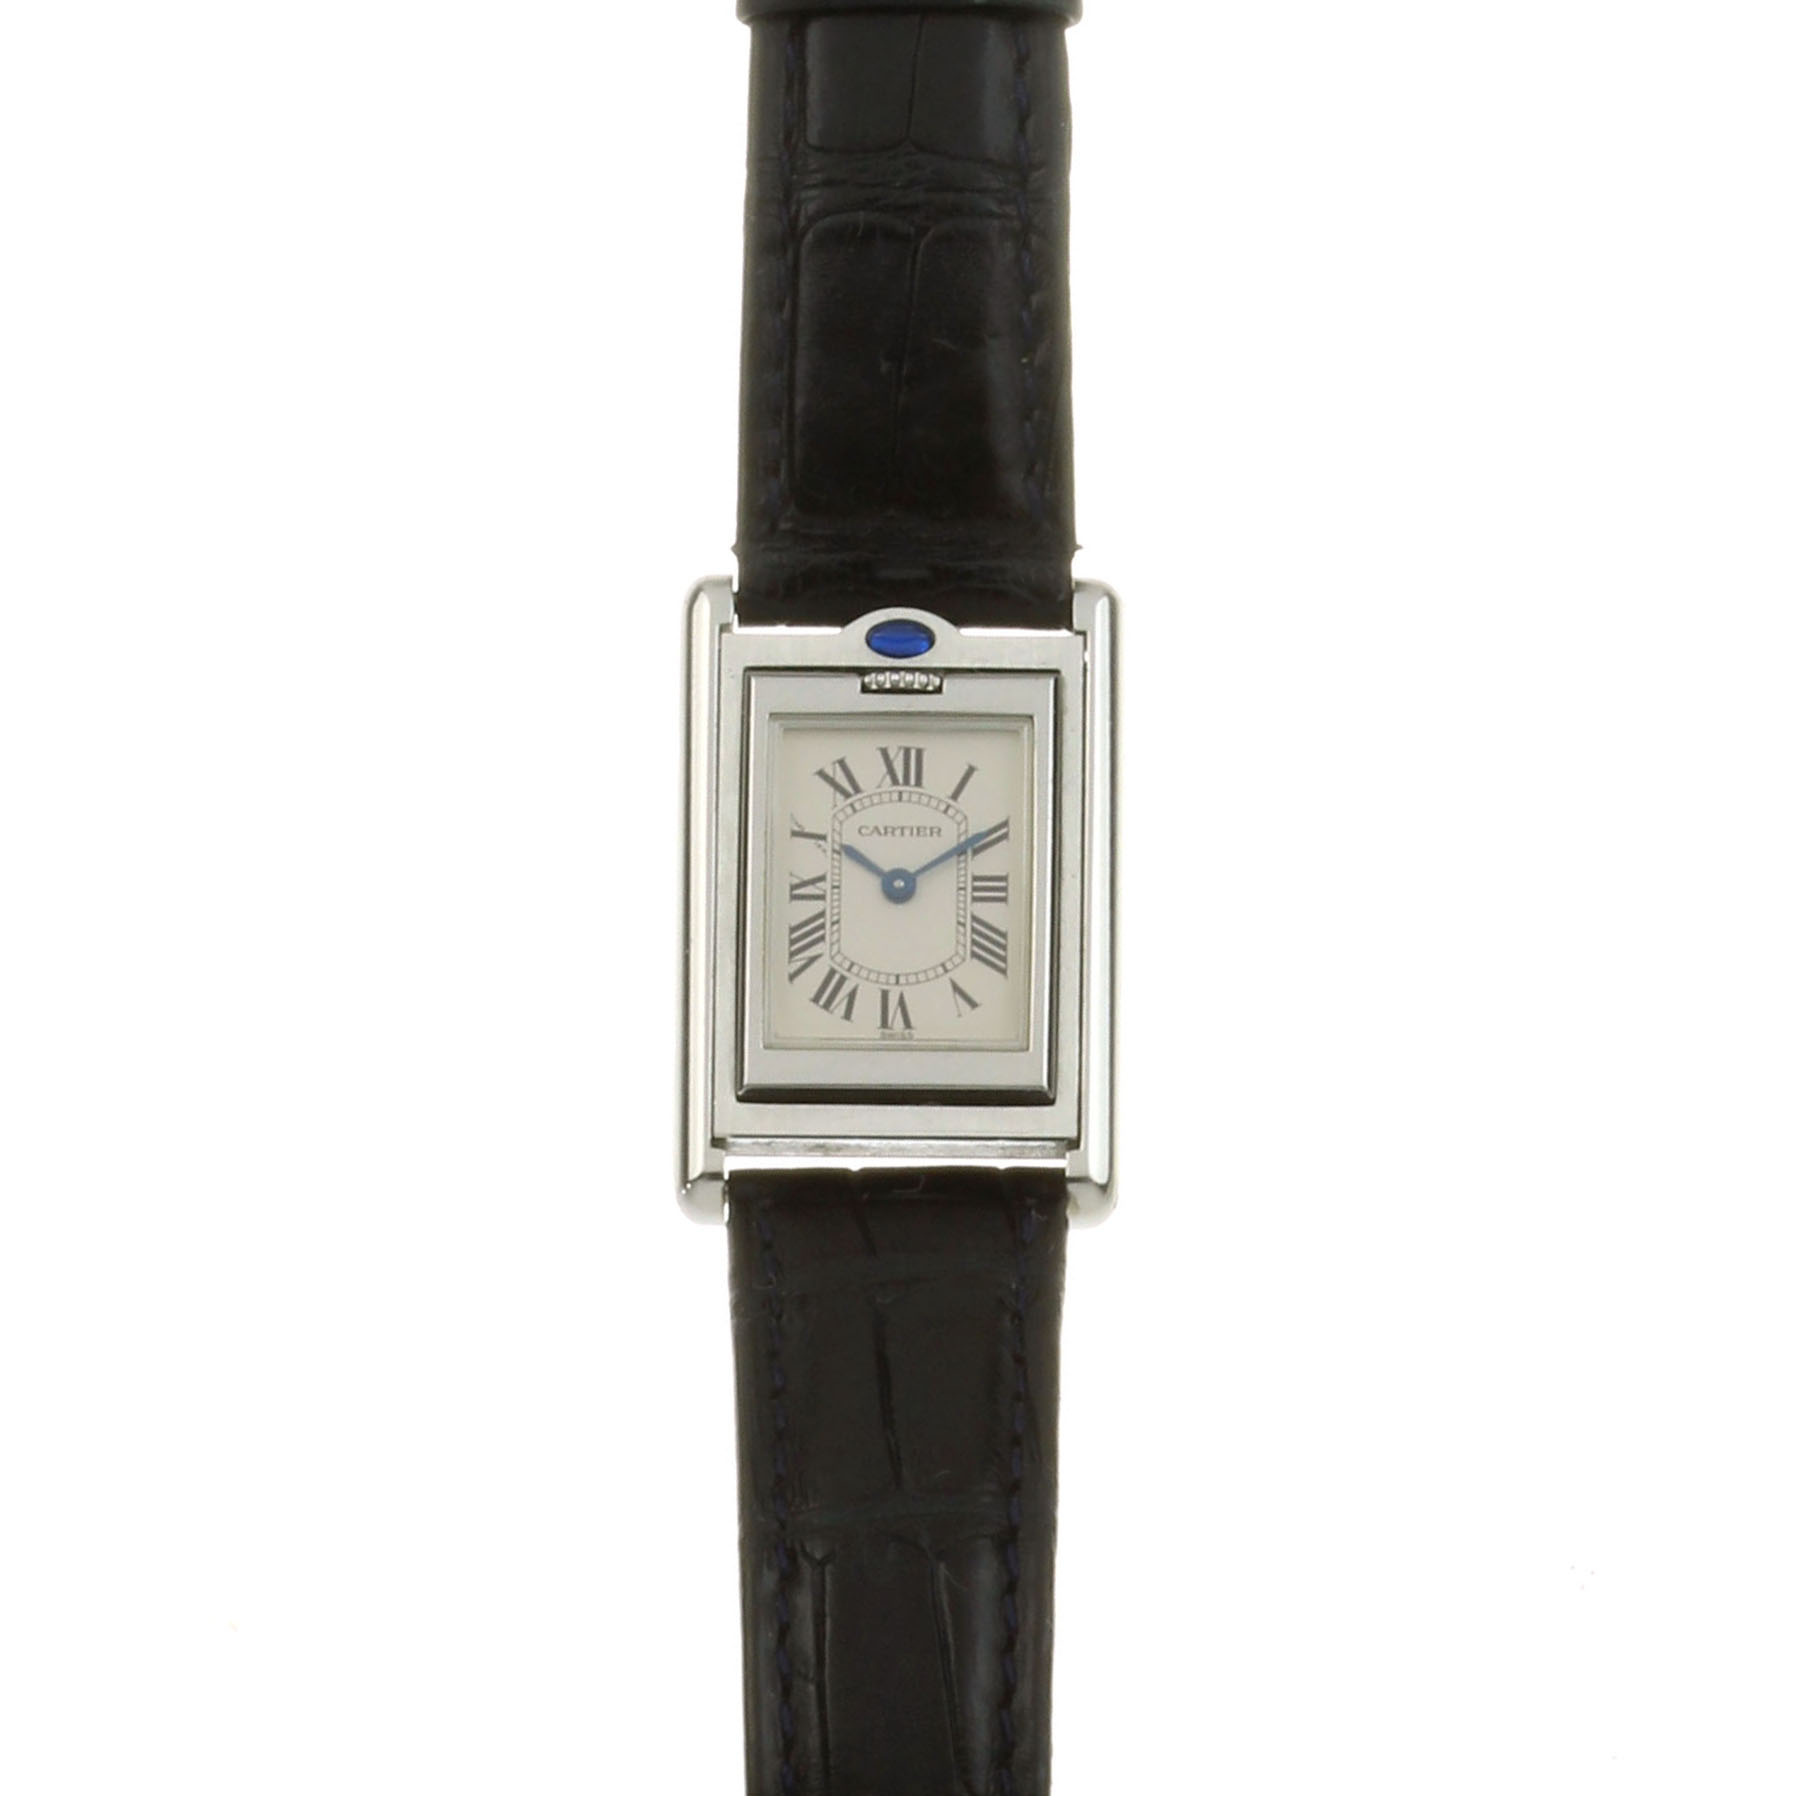 Los 36 - A CARTIER TANK BASCULANTE LADIES WRIST WATCH in stainless steel, the rectangular reversible face